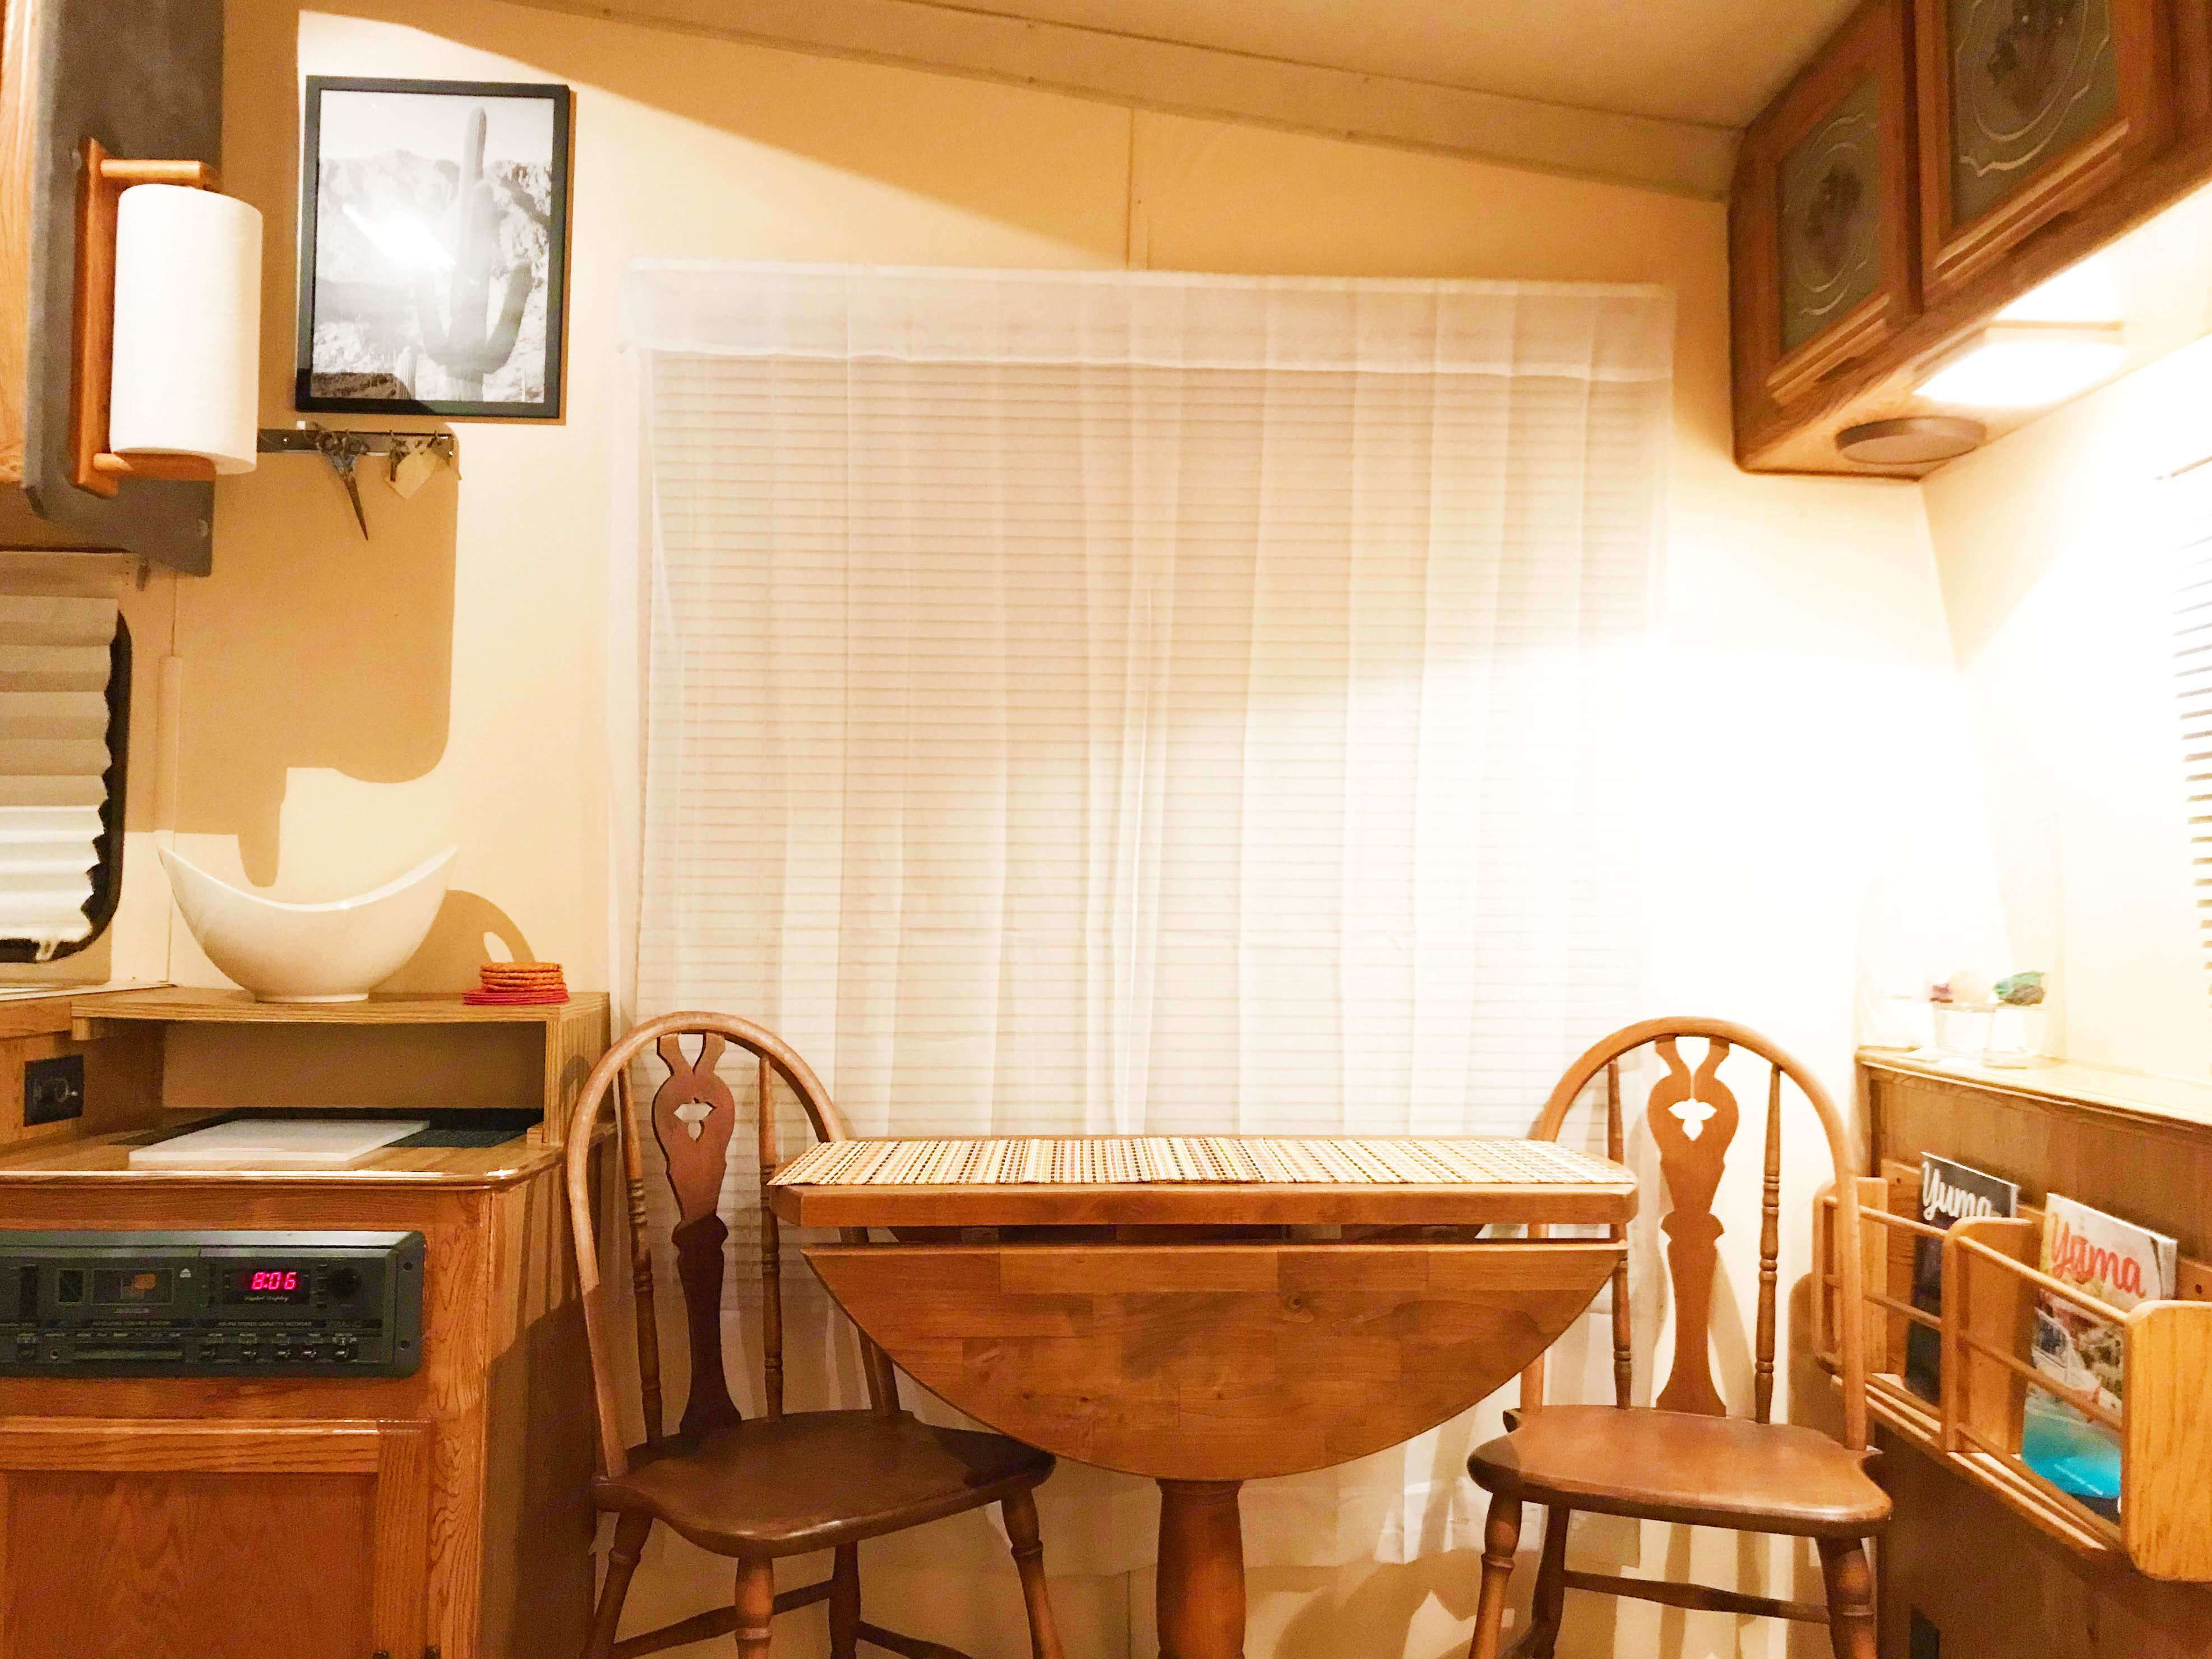 Cook an entire meal and enjoy our little dinner spot! . Liteway Other 1970